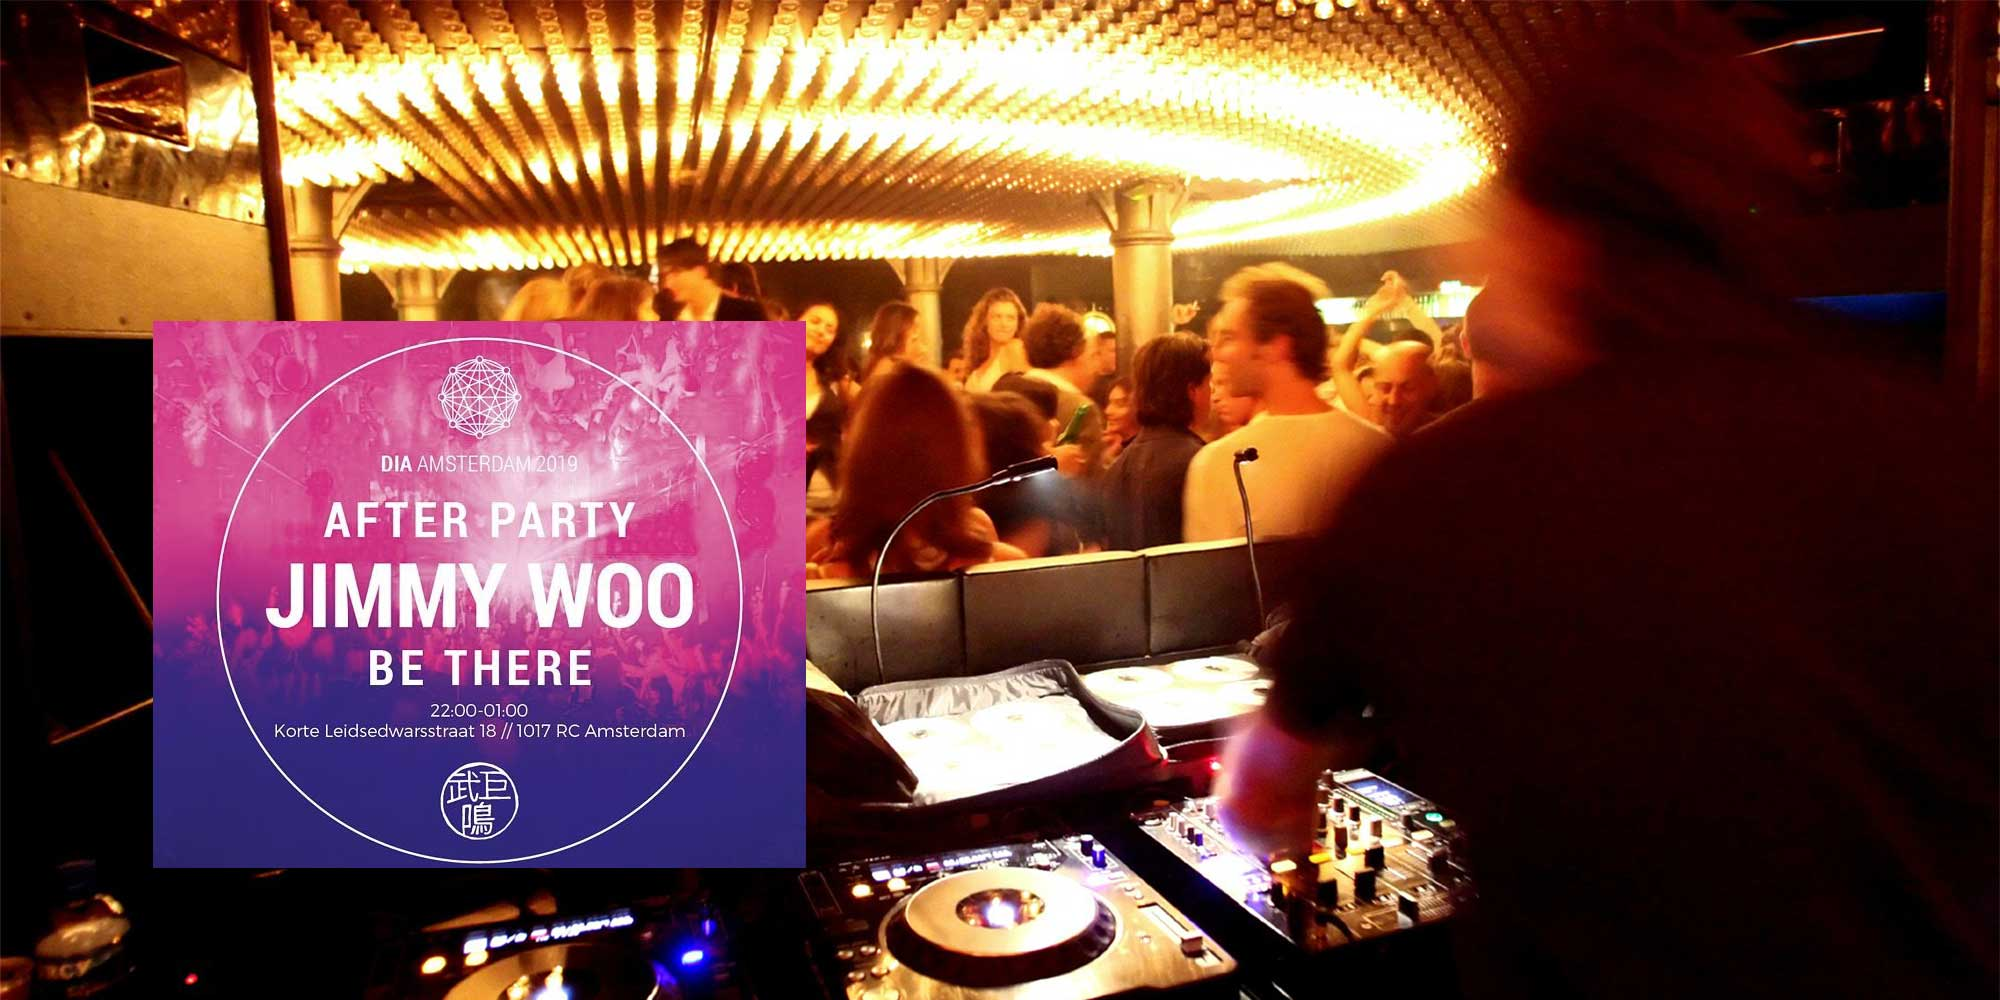 Digital Insurance Agenda Amsterdam 2019 - After Party @Jimmy Woo's